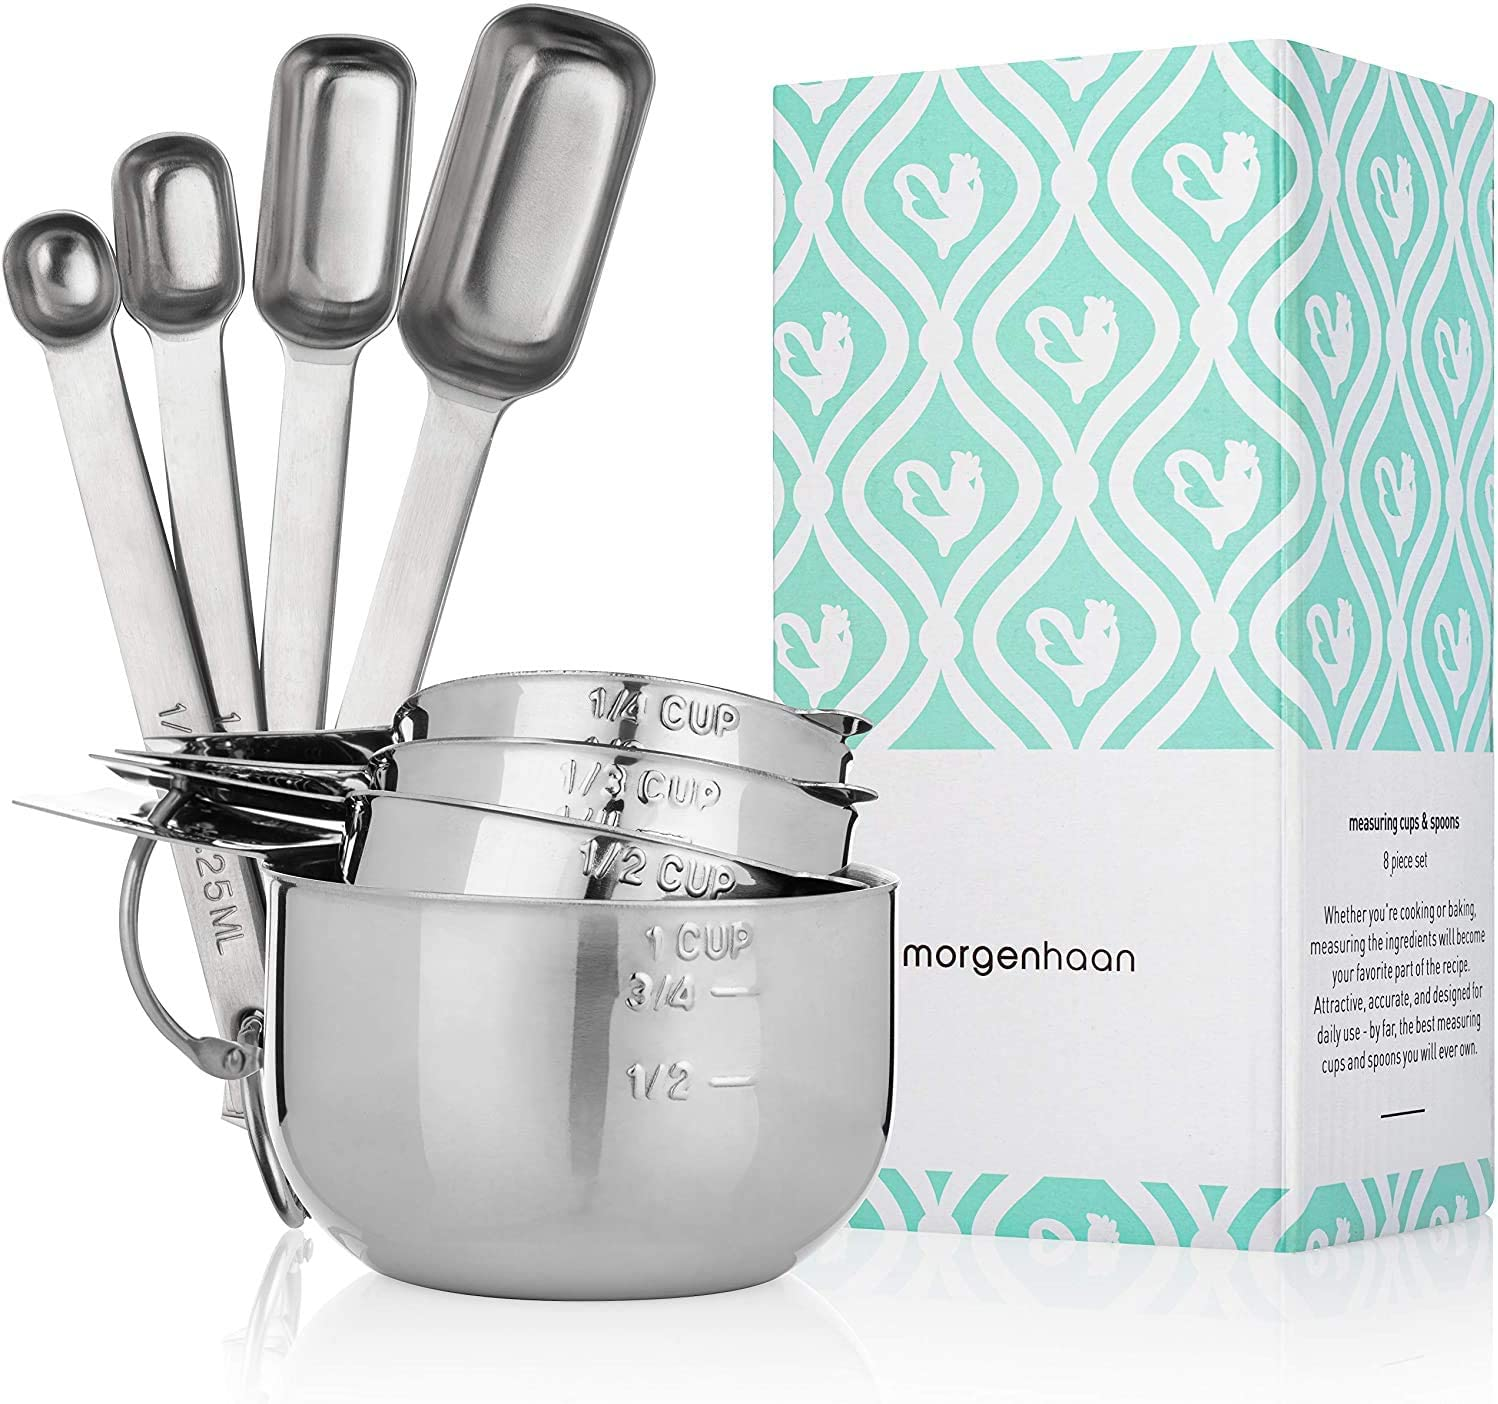 4 Spoons and 4 Cups Measuring Set of 8 Pieces Morgenhaan Stainless Steel Measuring Cups and Spoons